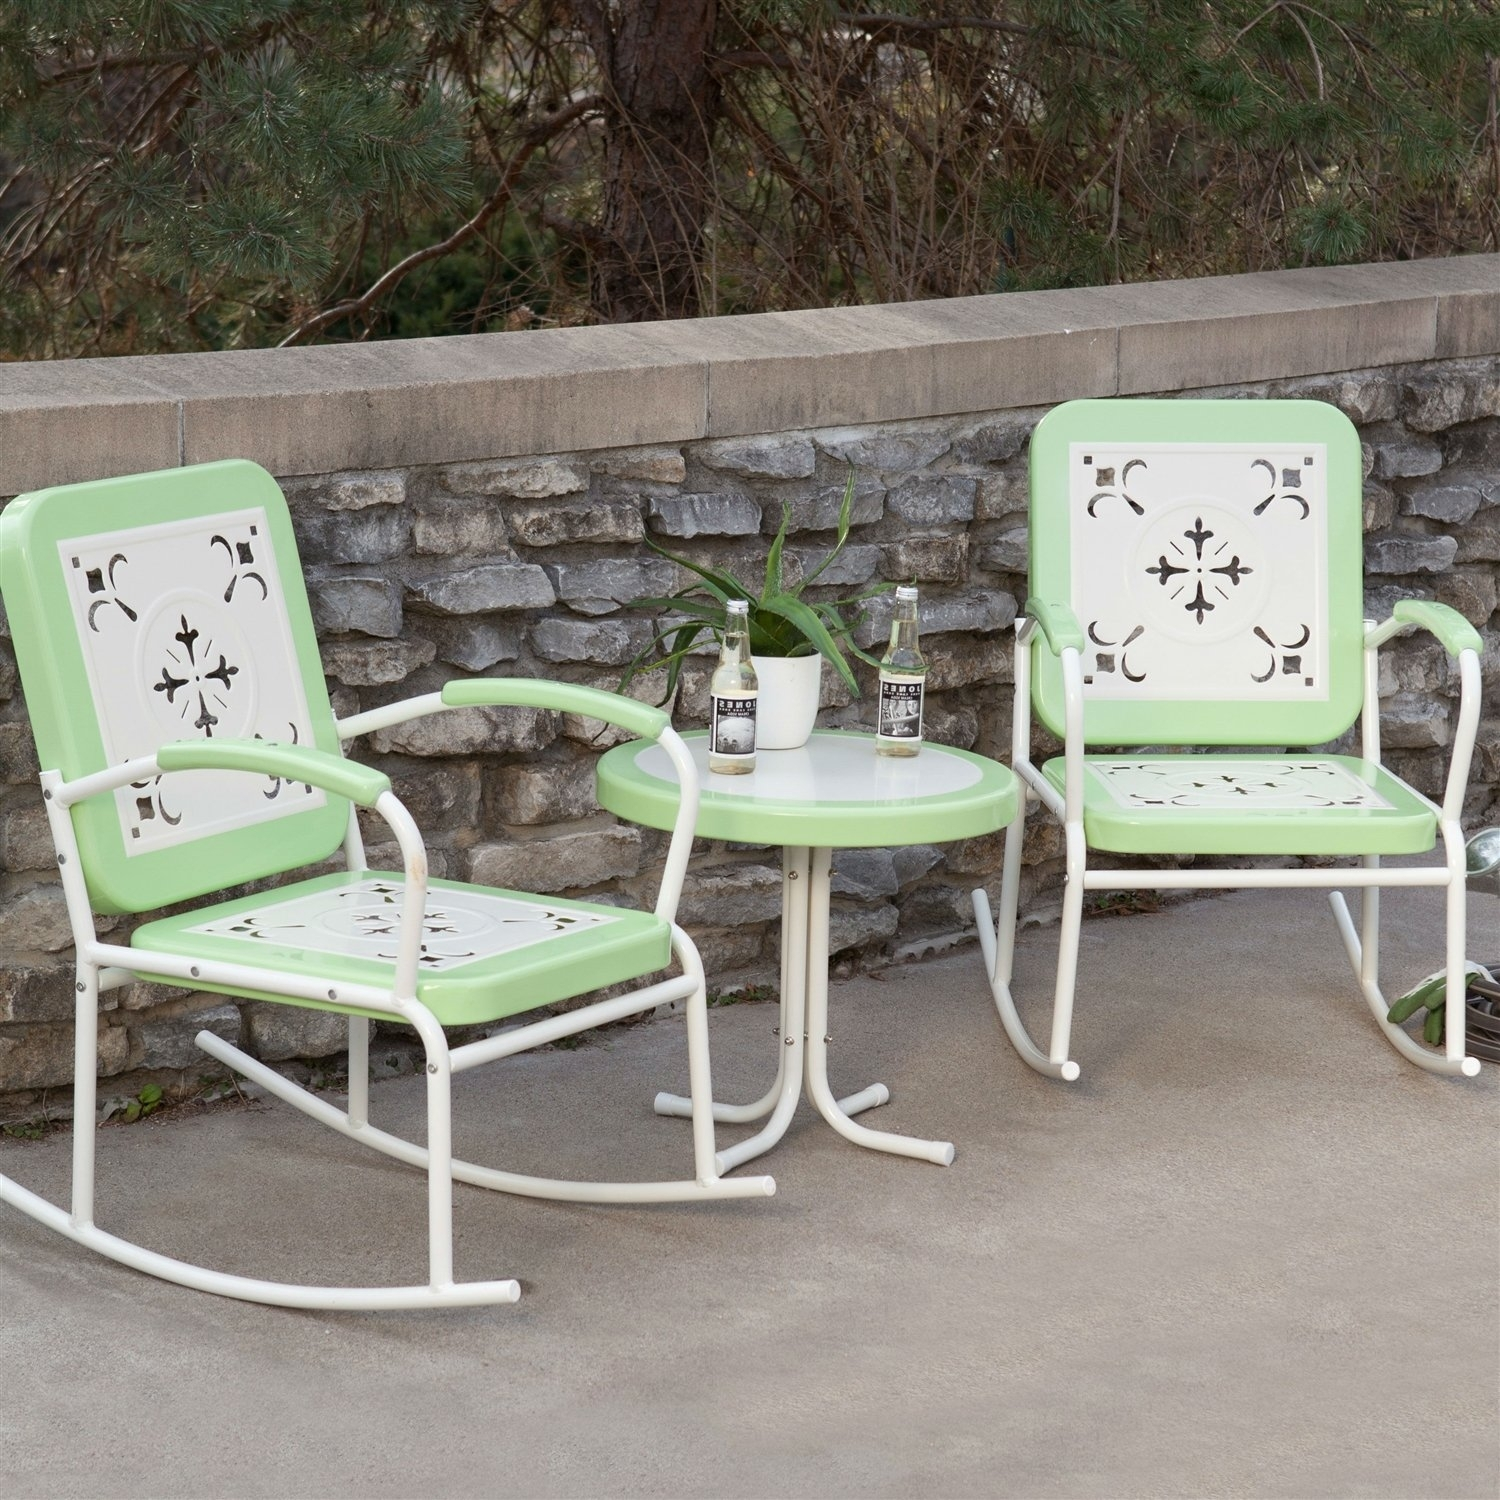 Mint Green Retro Patio 3 Piece Metal Rocker Rocking Chair Set | Products With Patio Rocking Chairs Sets (View 8 of 15)